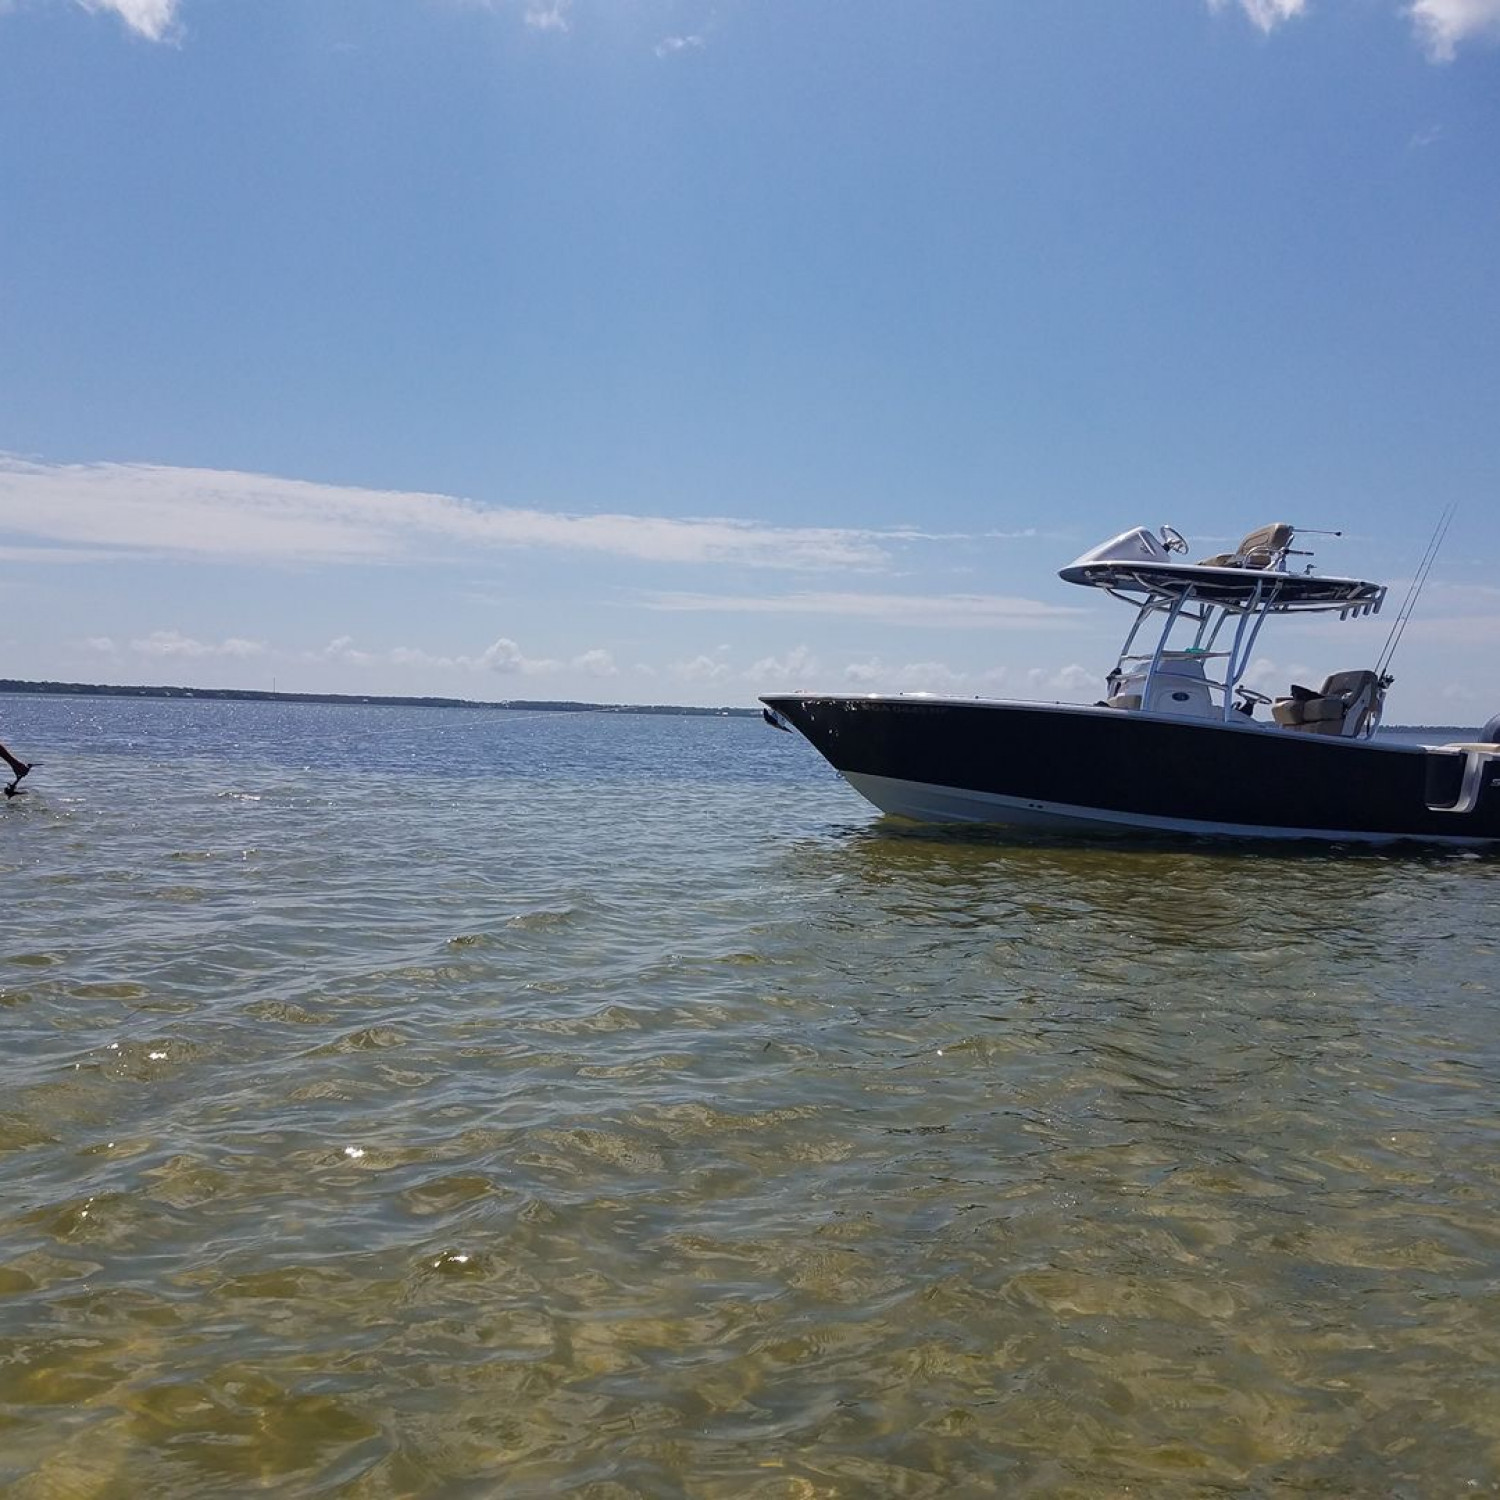 Title: Blacks Island - On board their Sportsman Open 252 Center Console - Location: Port St. Joe, FL. Participating in the Photo Contest #SportsmanFebruary2018